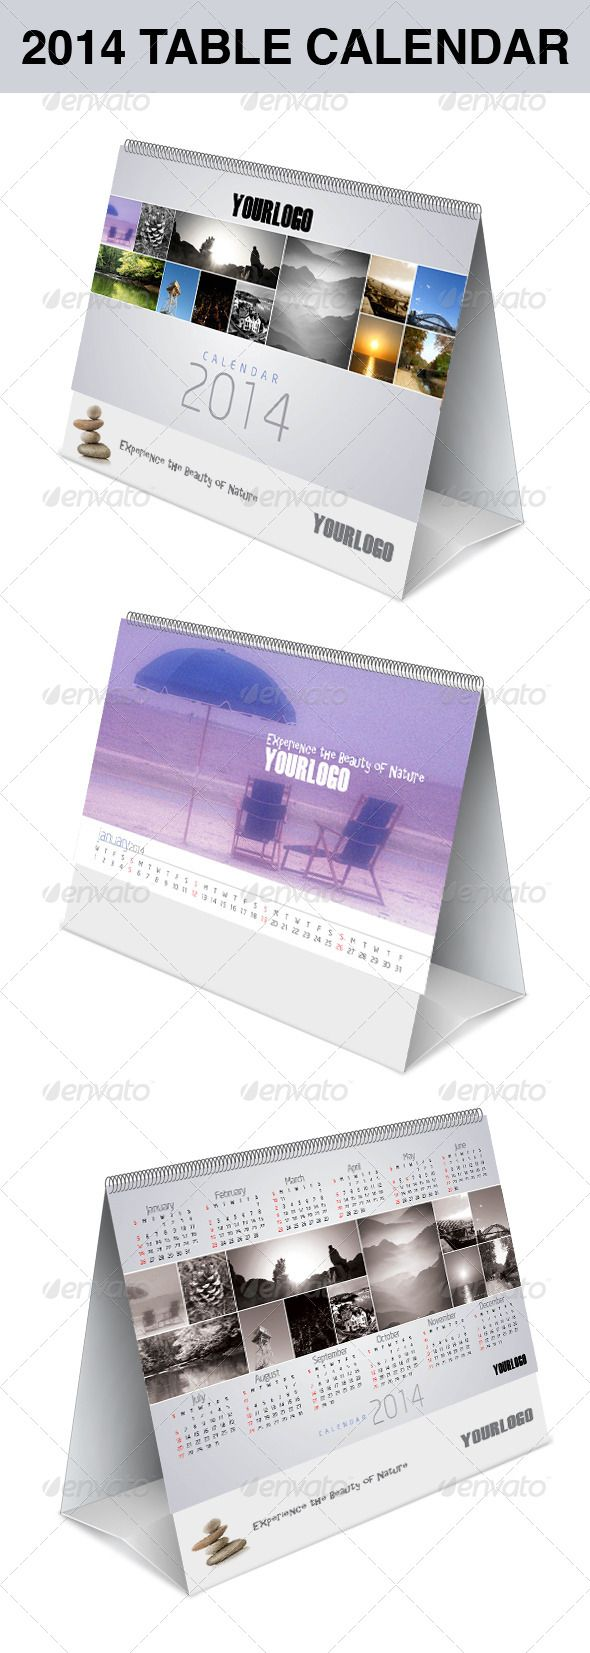 2014 table calendar #GraphicRiver creative 2014 table calendar Size: 10×6.125 inches Worked in: InDesign CS5 Included in the zip file you will also find an InDesign CS4 (Idml), with base design. Fonts used: neosans font family .ulozto /xzjgAU7K/neo-sans-font-family-rar Times new roman regular system font All colors and text are easily customizable. All paragraph styles are properly named. Images area divided in 50% black color layers to help customize each one easily an...